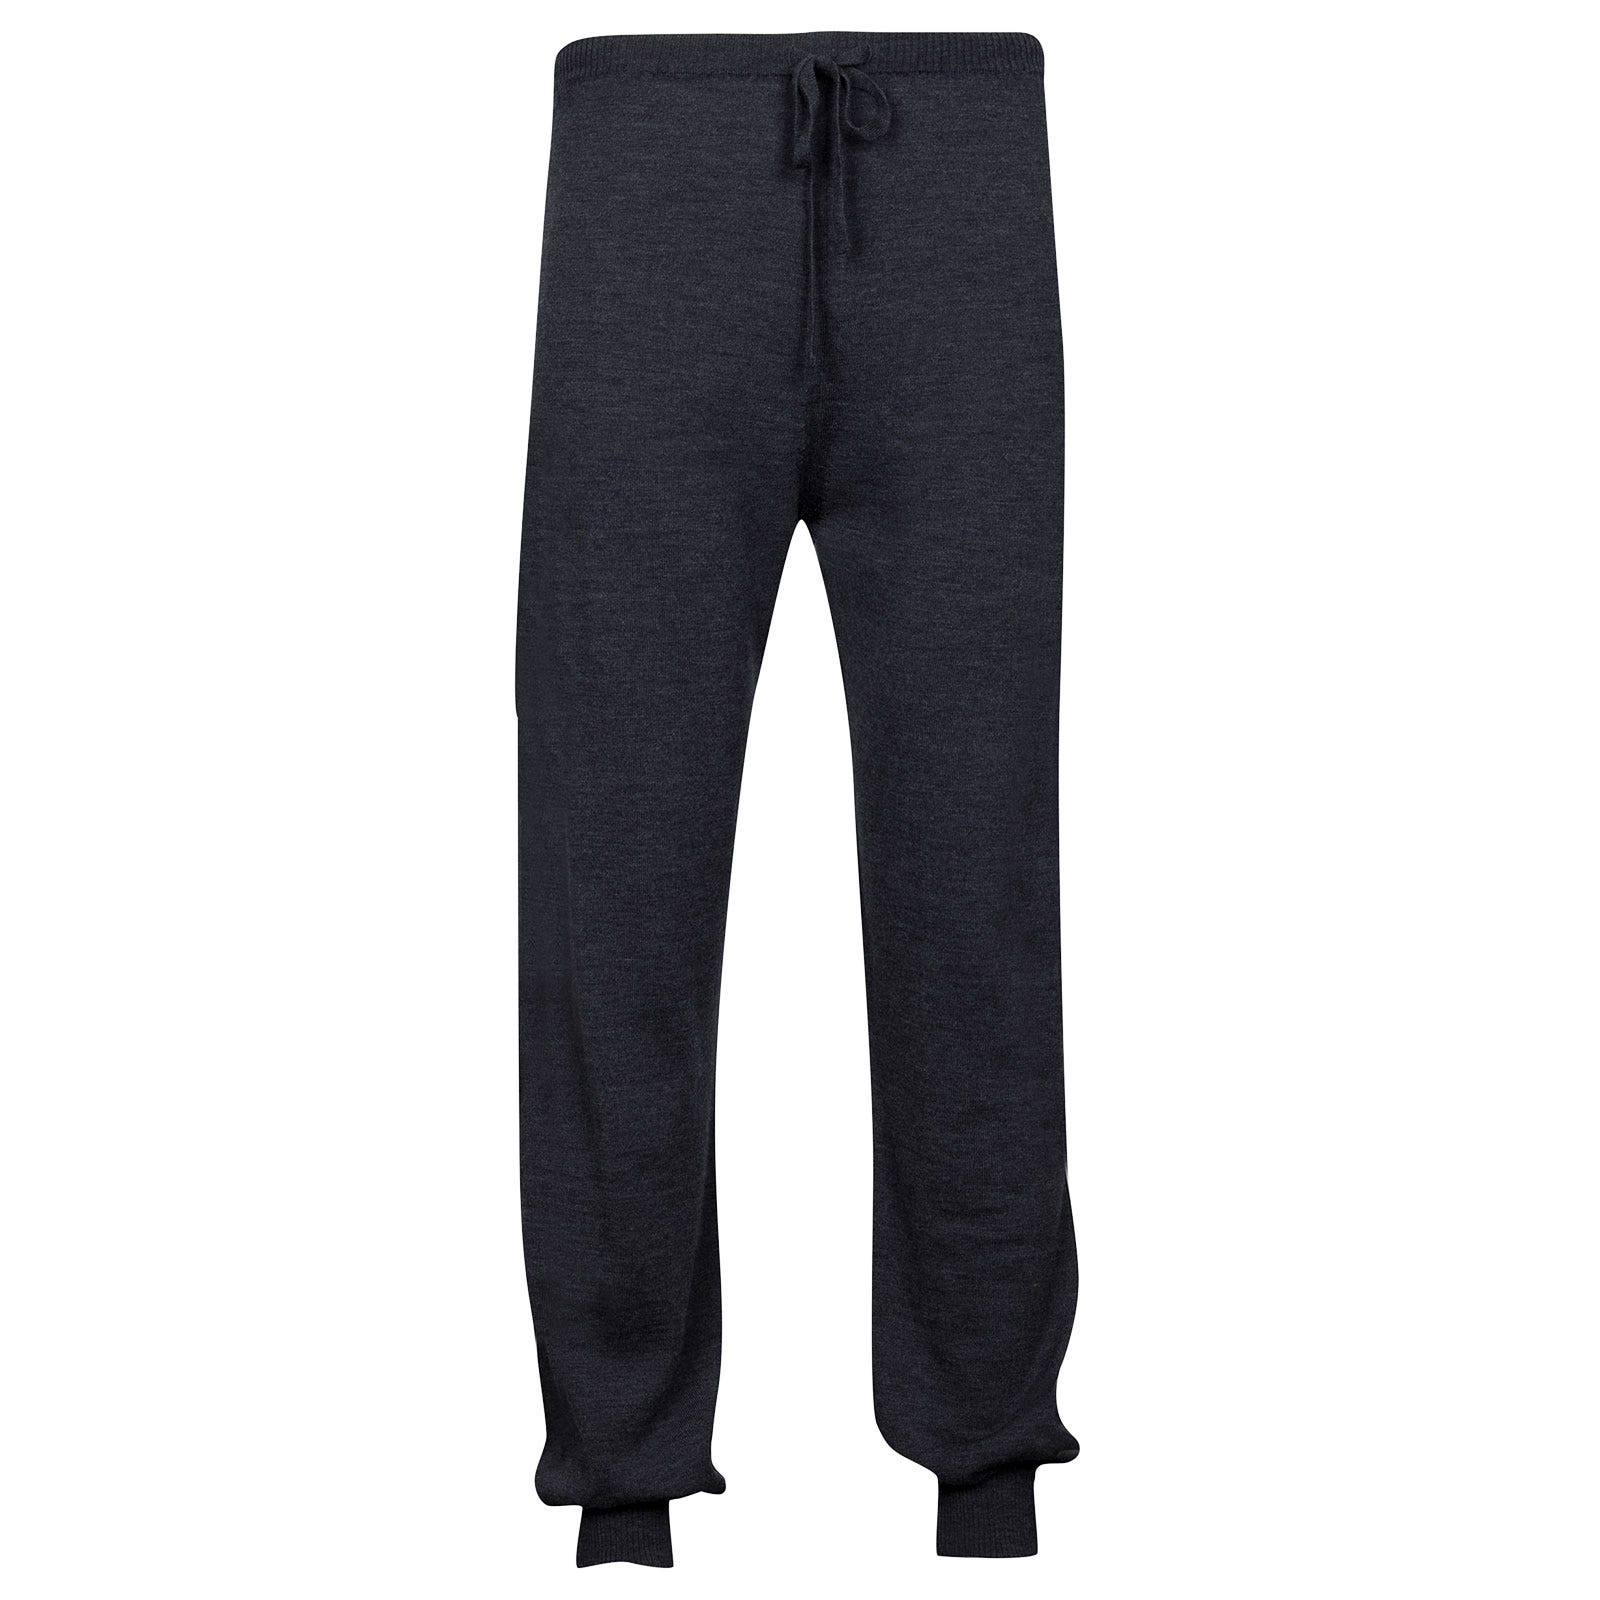 John Smedley Lock Merino Wool Trouser in Charcoal-L